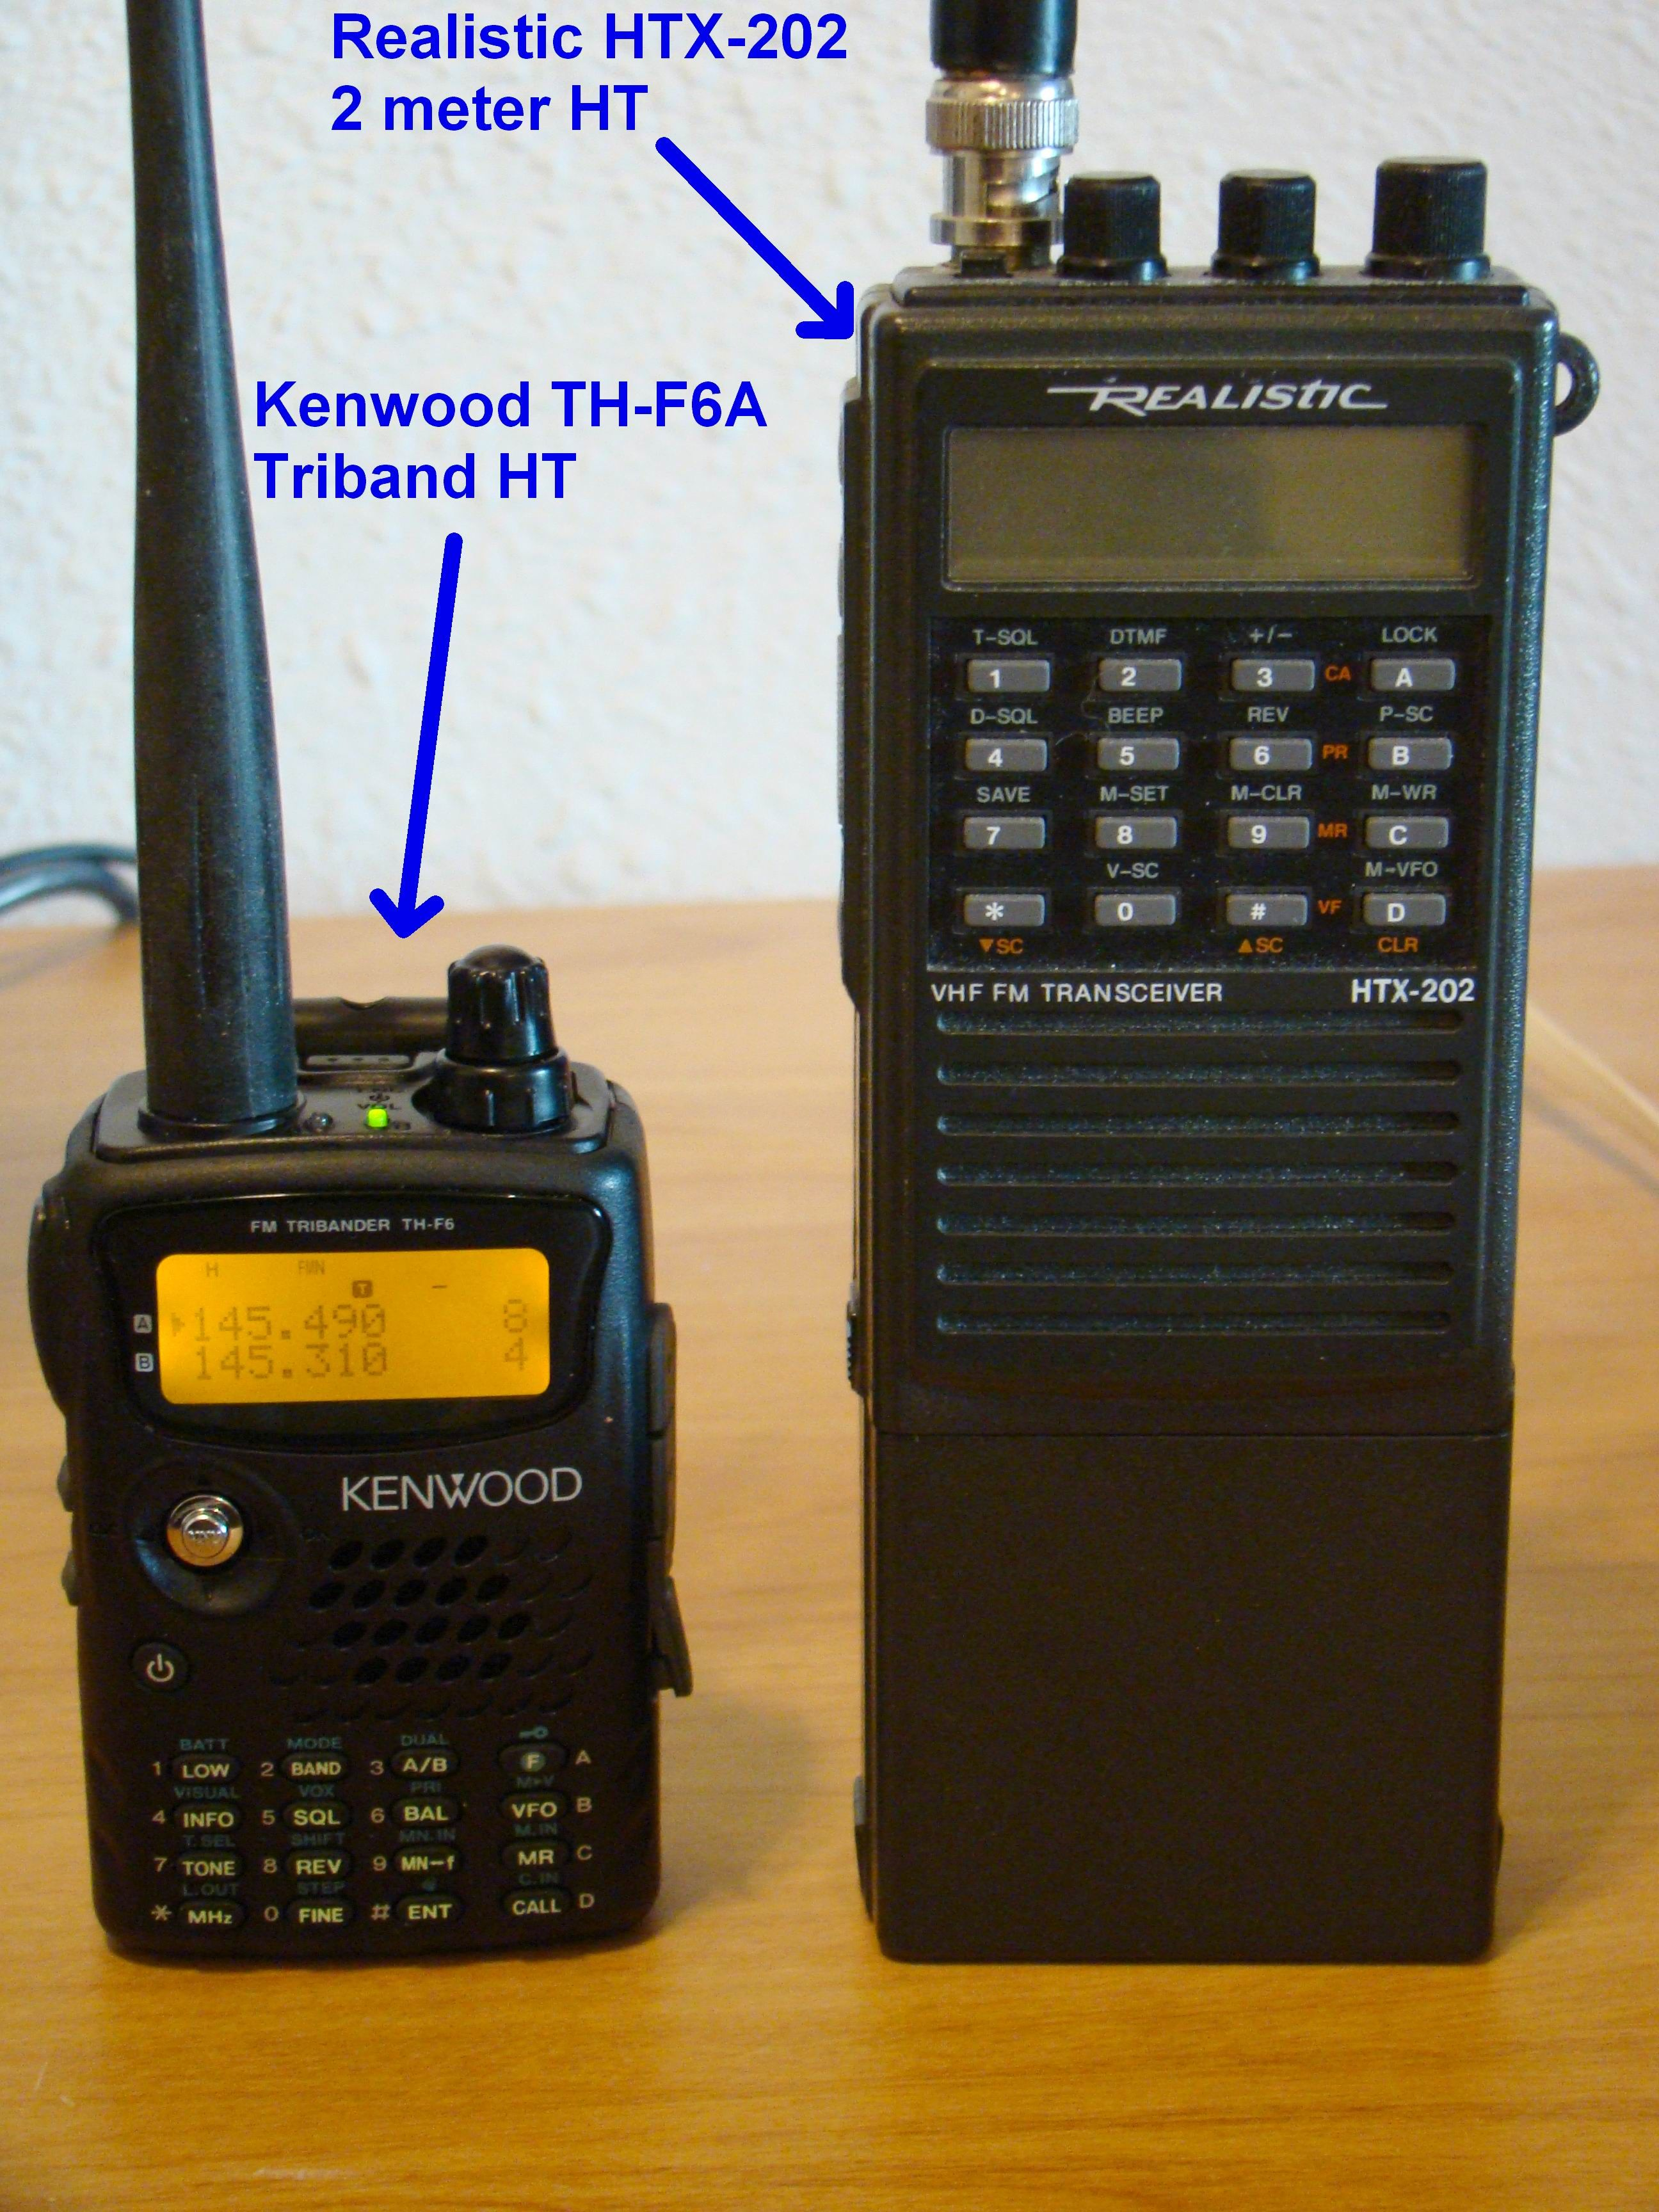 Kenwood TH-F6A Triband Ham Radio HT Size Comparsion To An